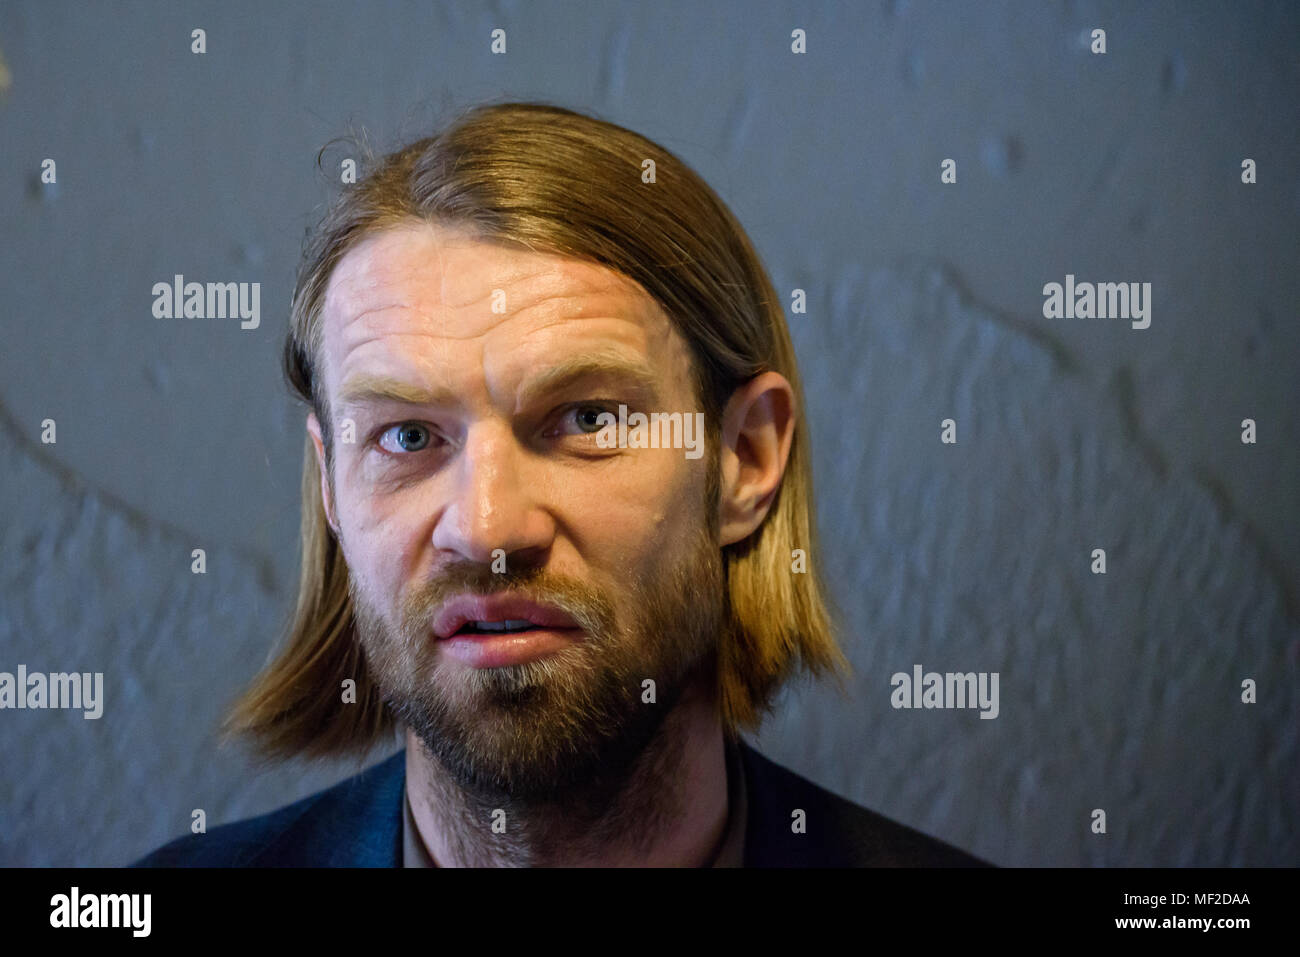 24.04.2018. RIGA, LATVIA. Former professional football player Kaspars Gorkss, candidate for LFF president press conference before elections for President of Latvian Football Federation. - Stock Image